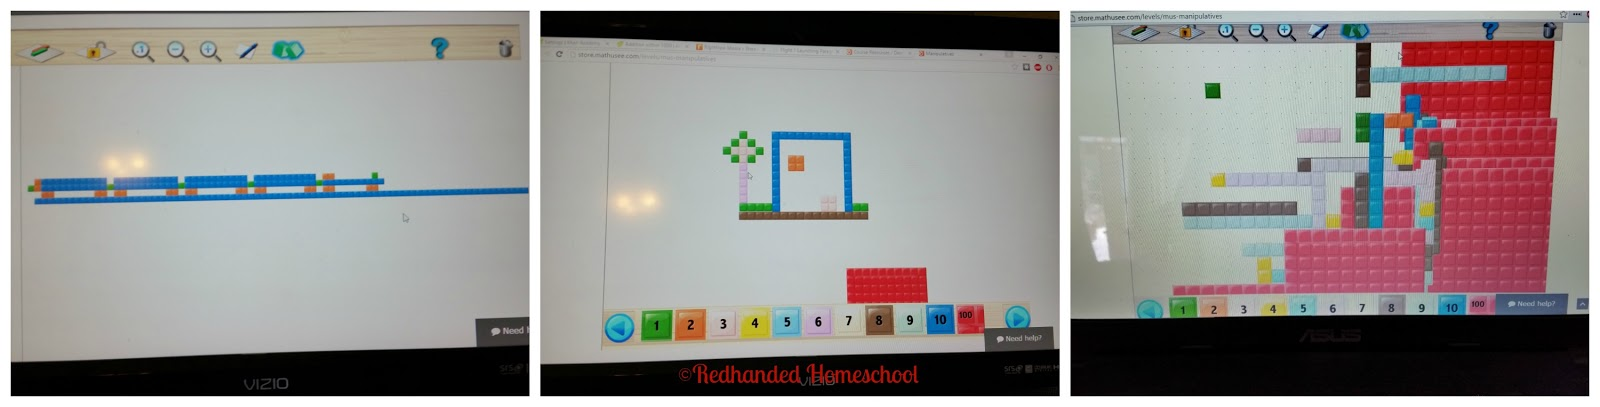 math worksheet : insane in the mombrain math u see digital pack tos crew review : Math U See Worksheet Generator